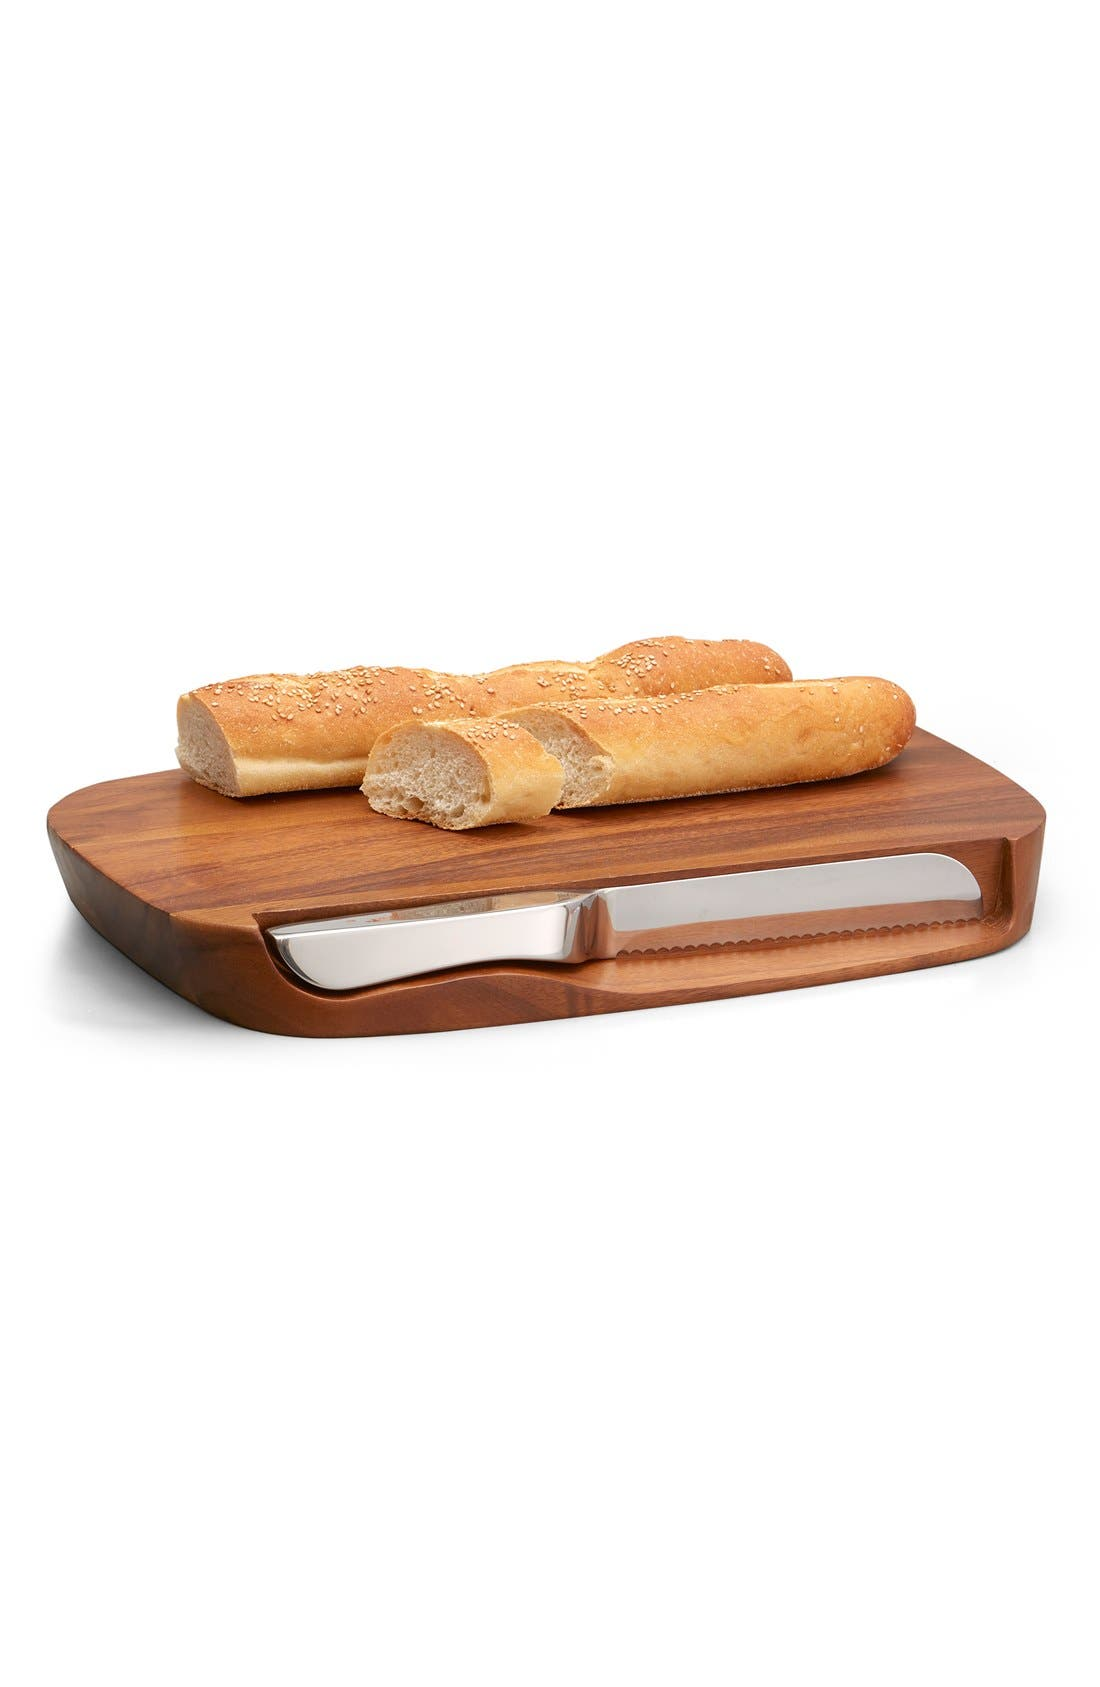 'Blend' Bread Board & Knife,                             Main thumbnail 1, color,                             Brown